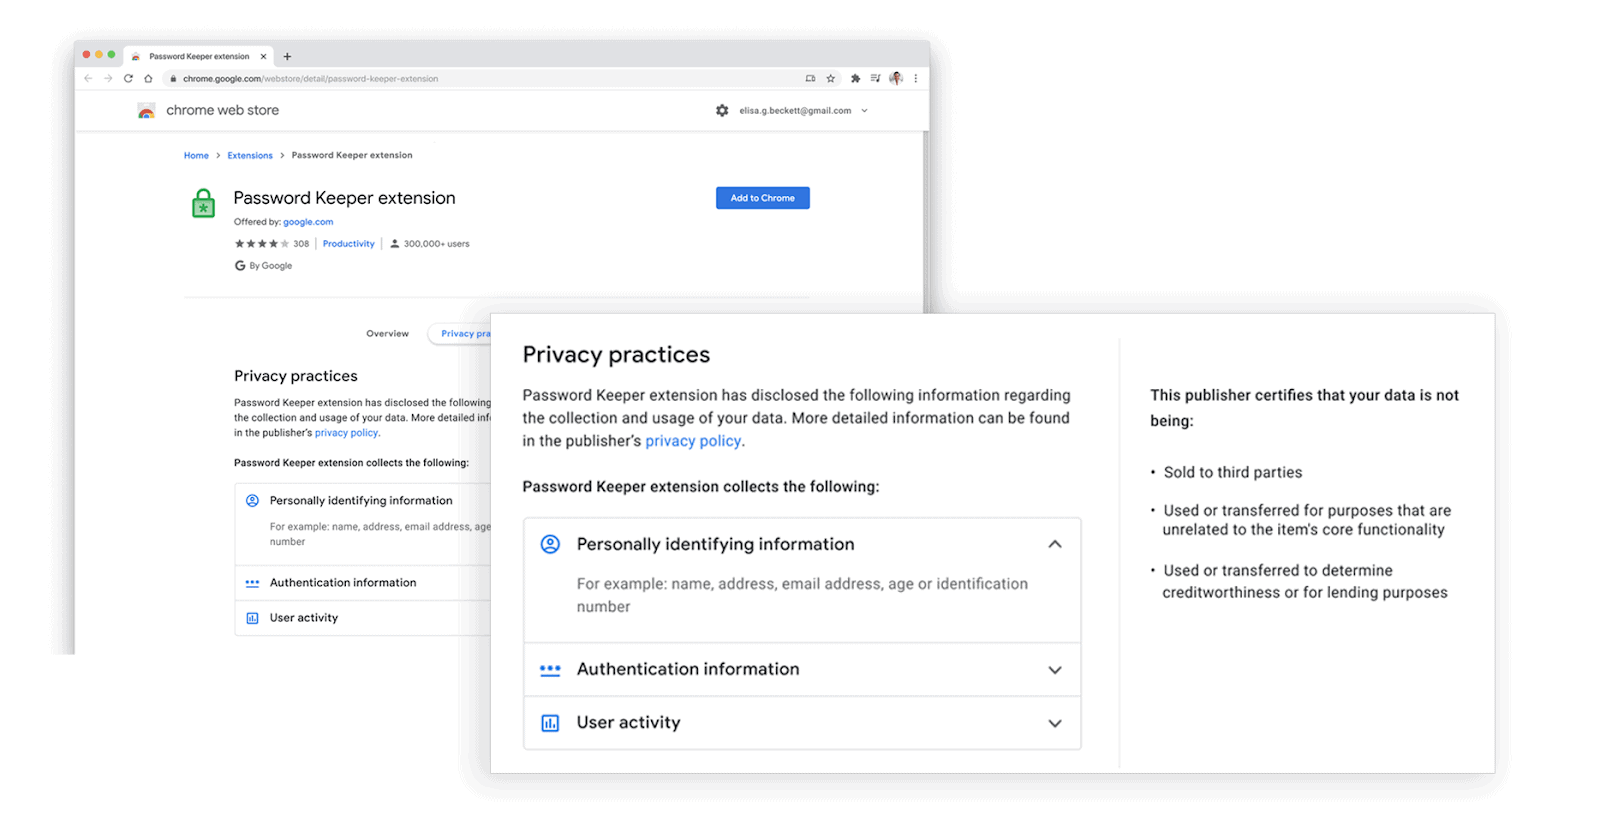 google chrome web store privacy practices